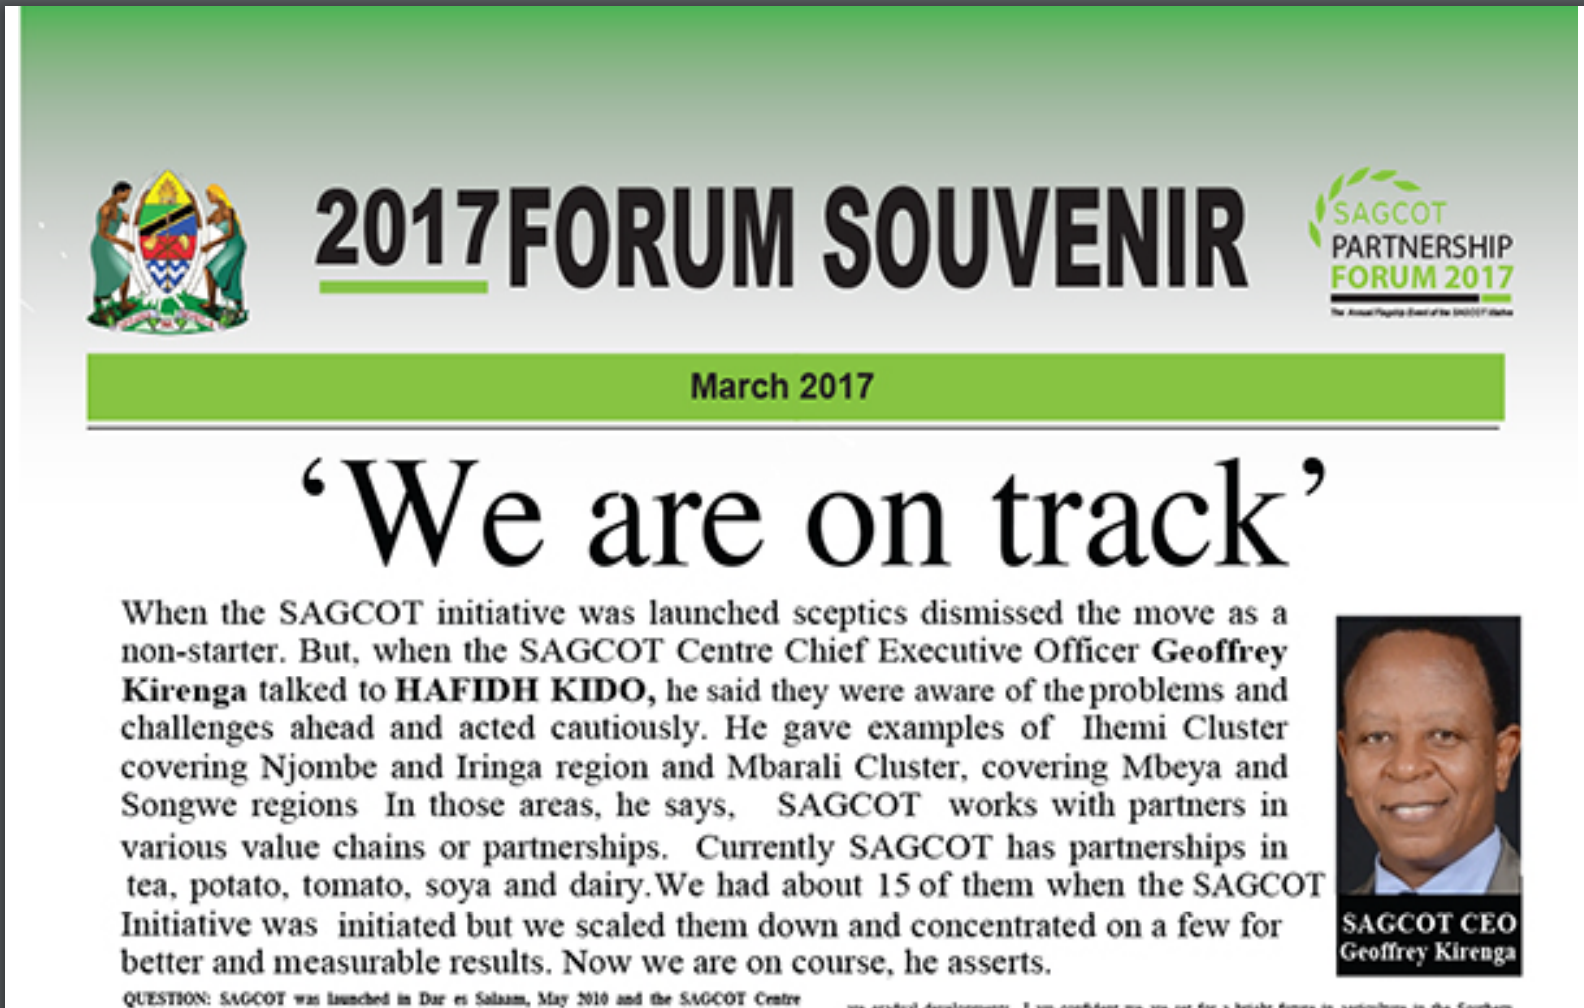 "2017 Forum Souvenir ""When the SAGCOT initiative was launched sceptics dismissed the move as a non-stater"